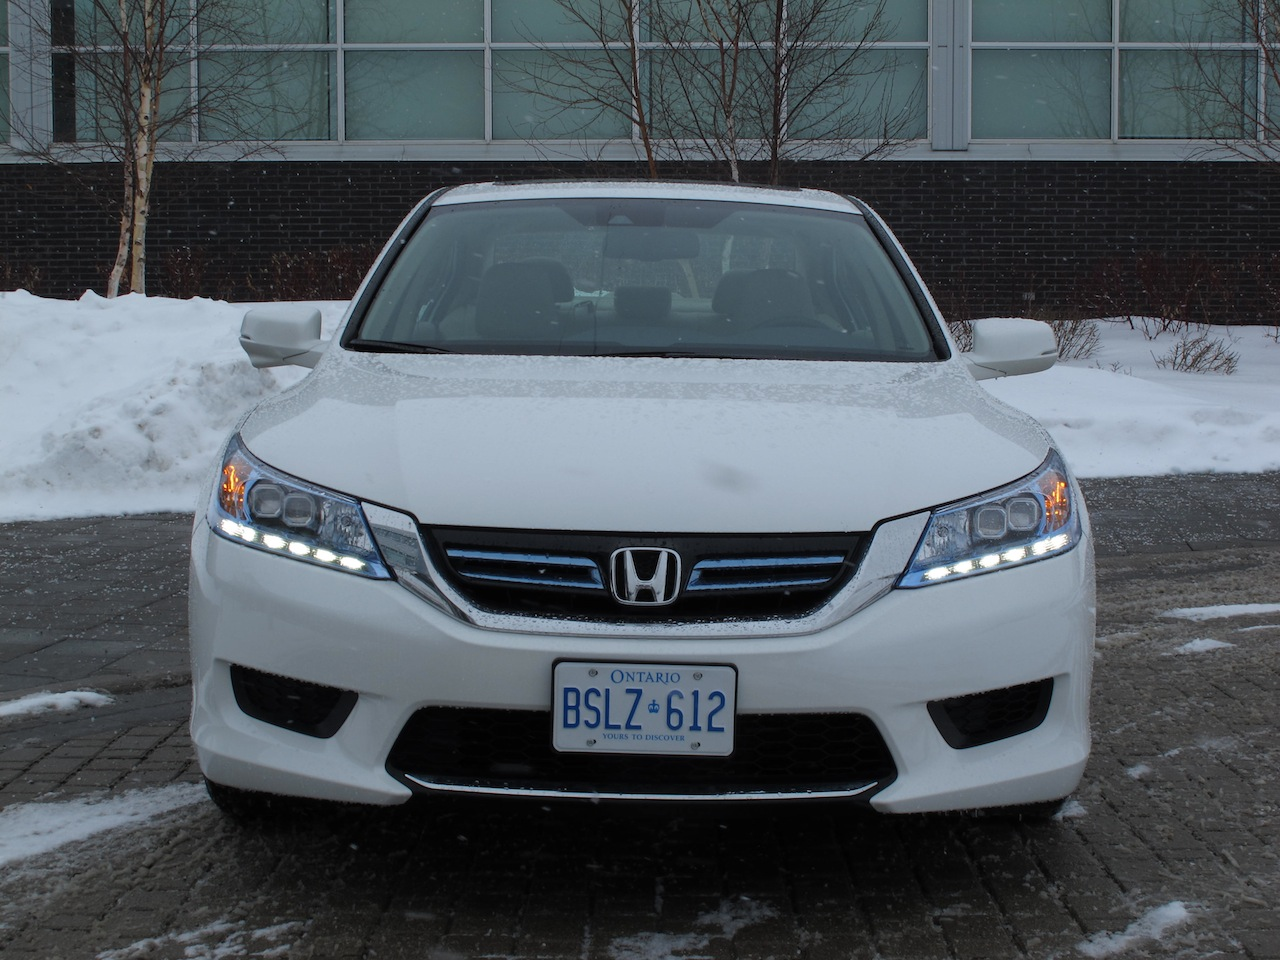 Honda Accord Hybrid White